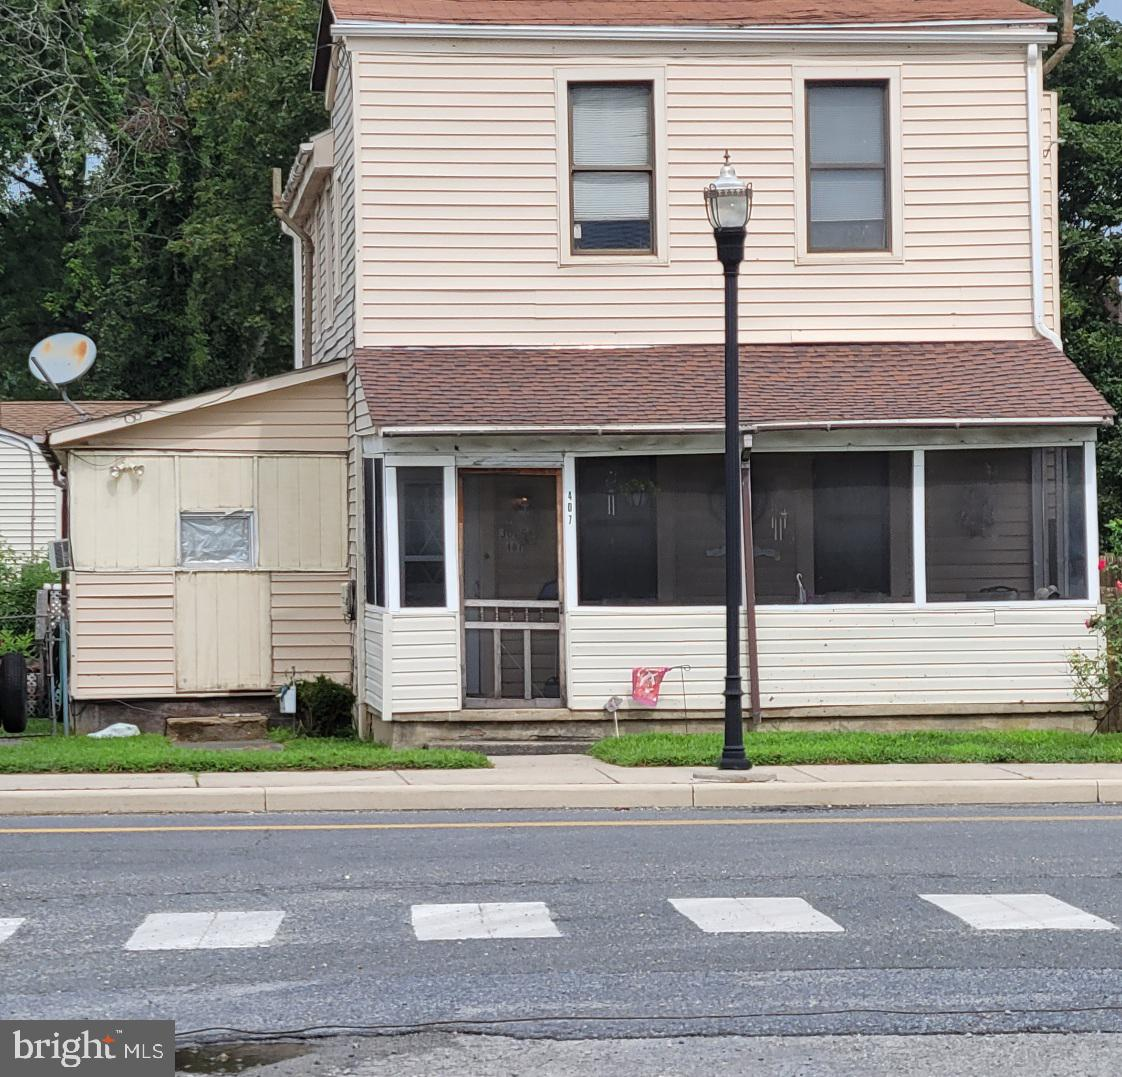 Investor Alert!!! This underpriced home is ready for some TLC and will be a great investment.  Renters currently in place and is related to seller.    Tenant interested in continuning to rent from new owner if possible.  Sale as is, no warranties, no repairs and inspections for information purposes only!   Right in the heart of historic Townsend and close proximity to  general stores, pharmacy and pizzeria and Deldot buses!